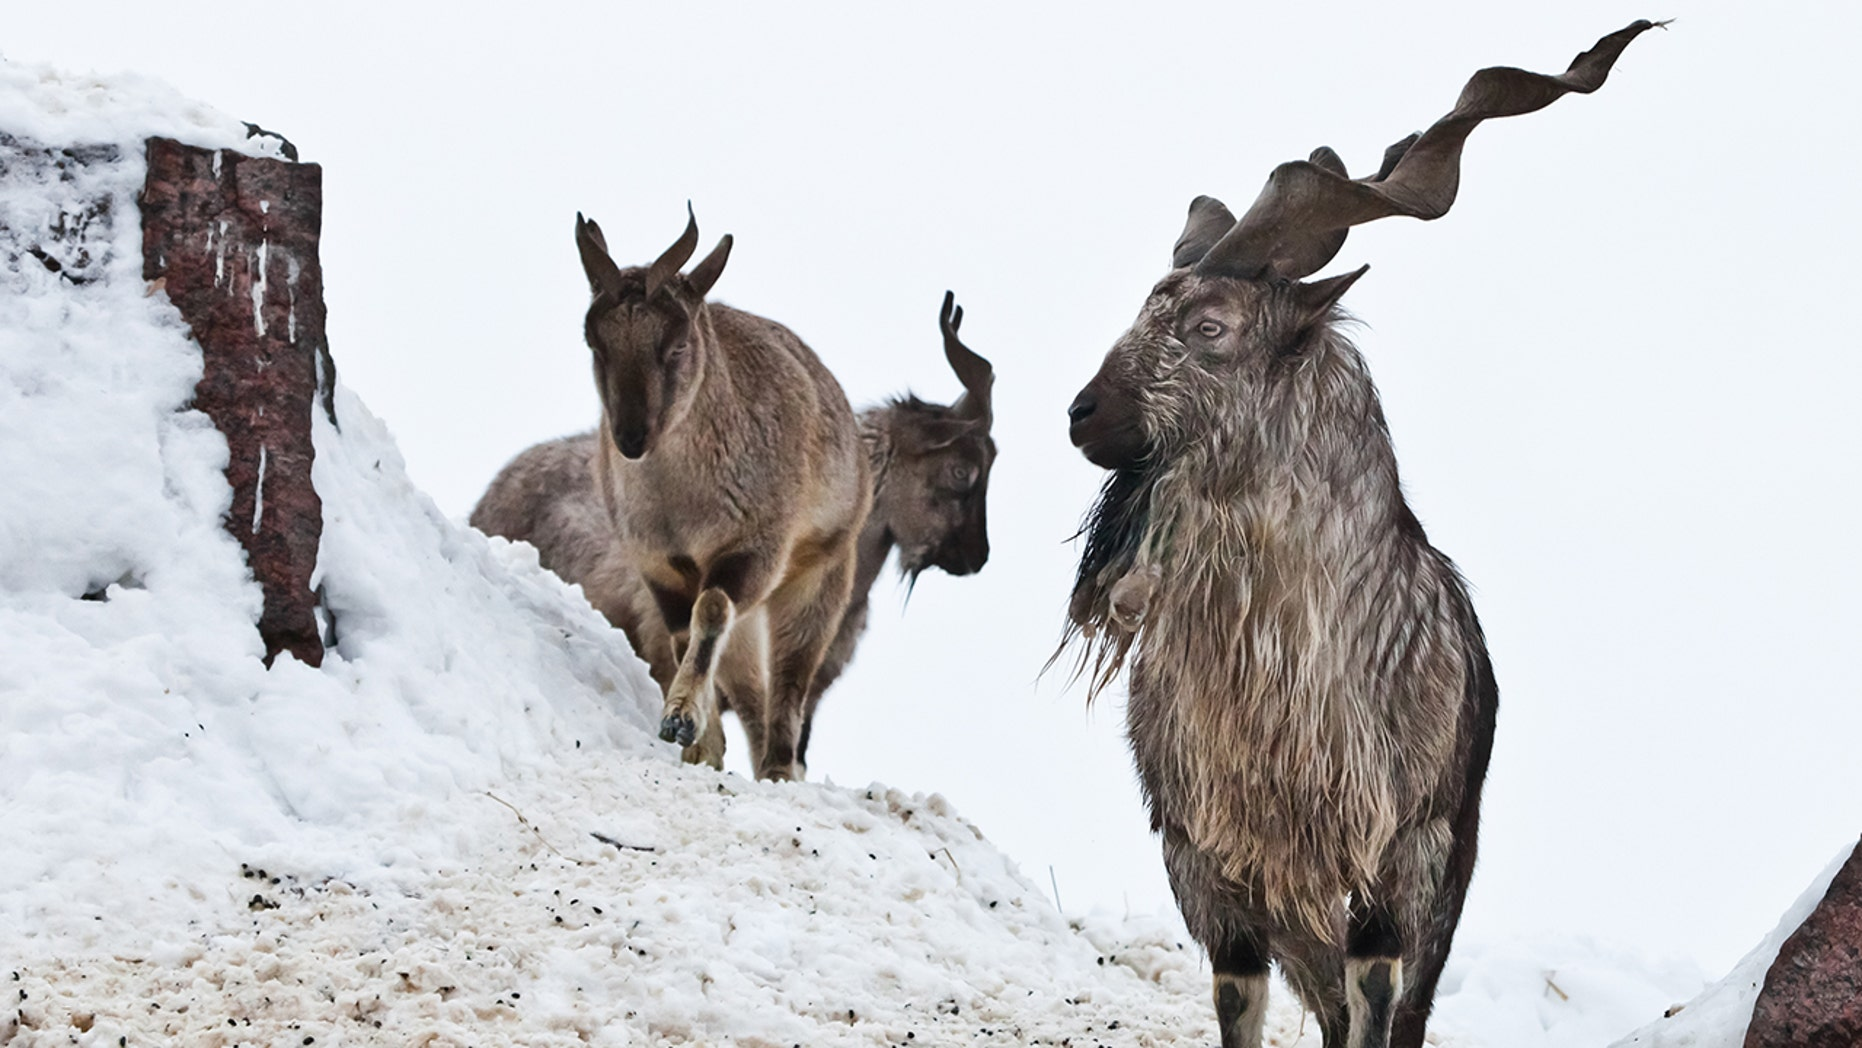 Mountain goat (Markhor) between snow and rock against white sky, big horns.